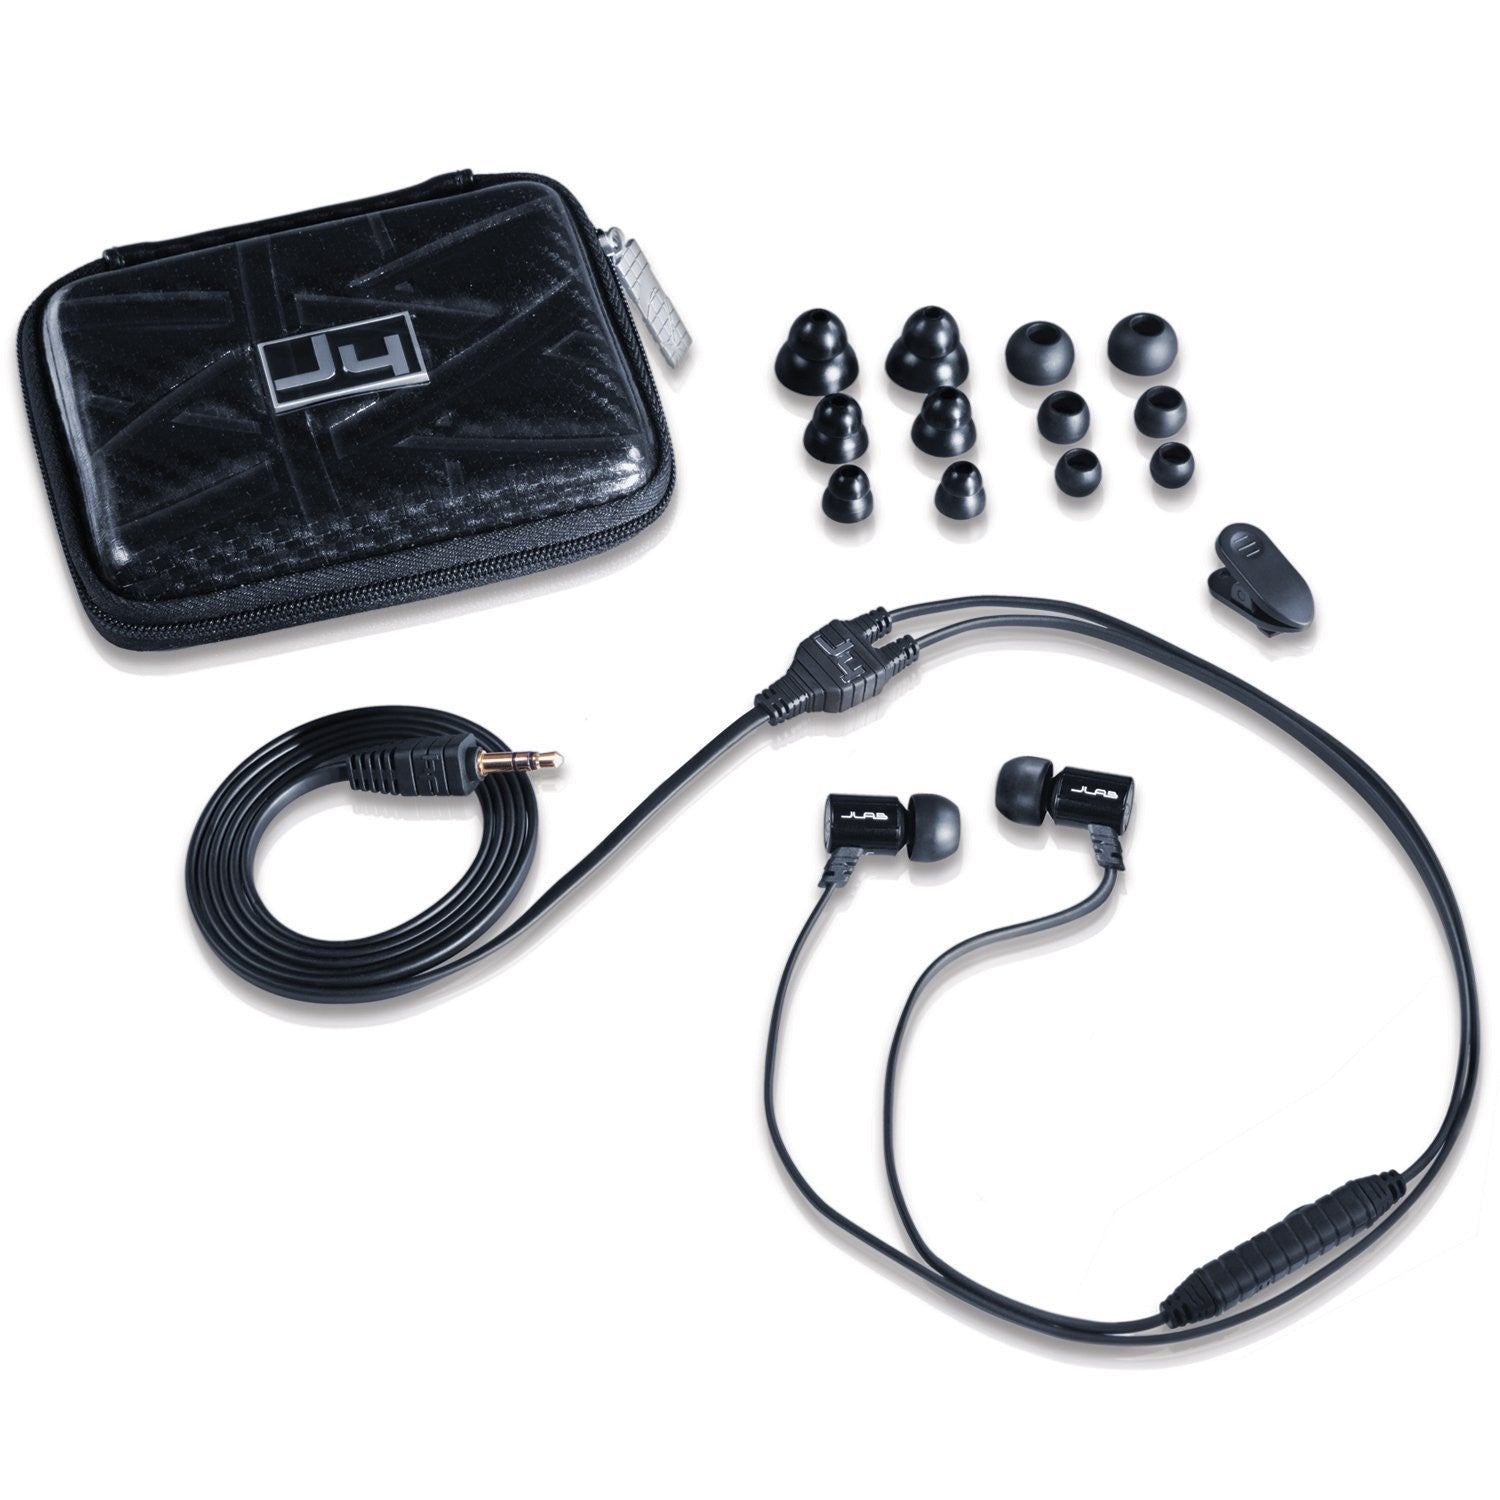 Jlab earbuds with mic - earbuds bass with microphone